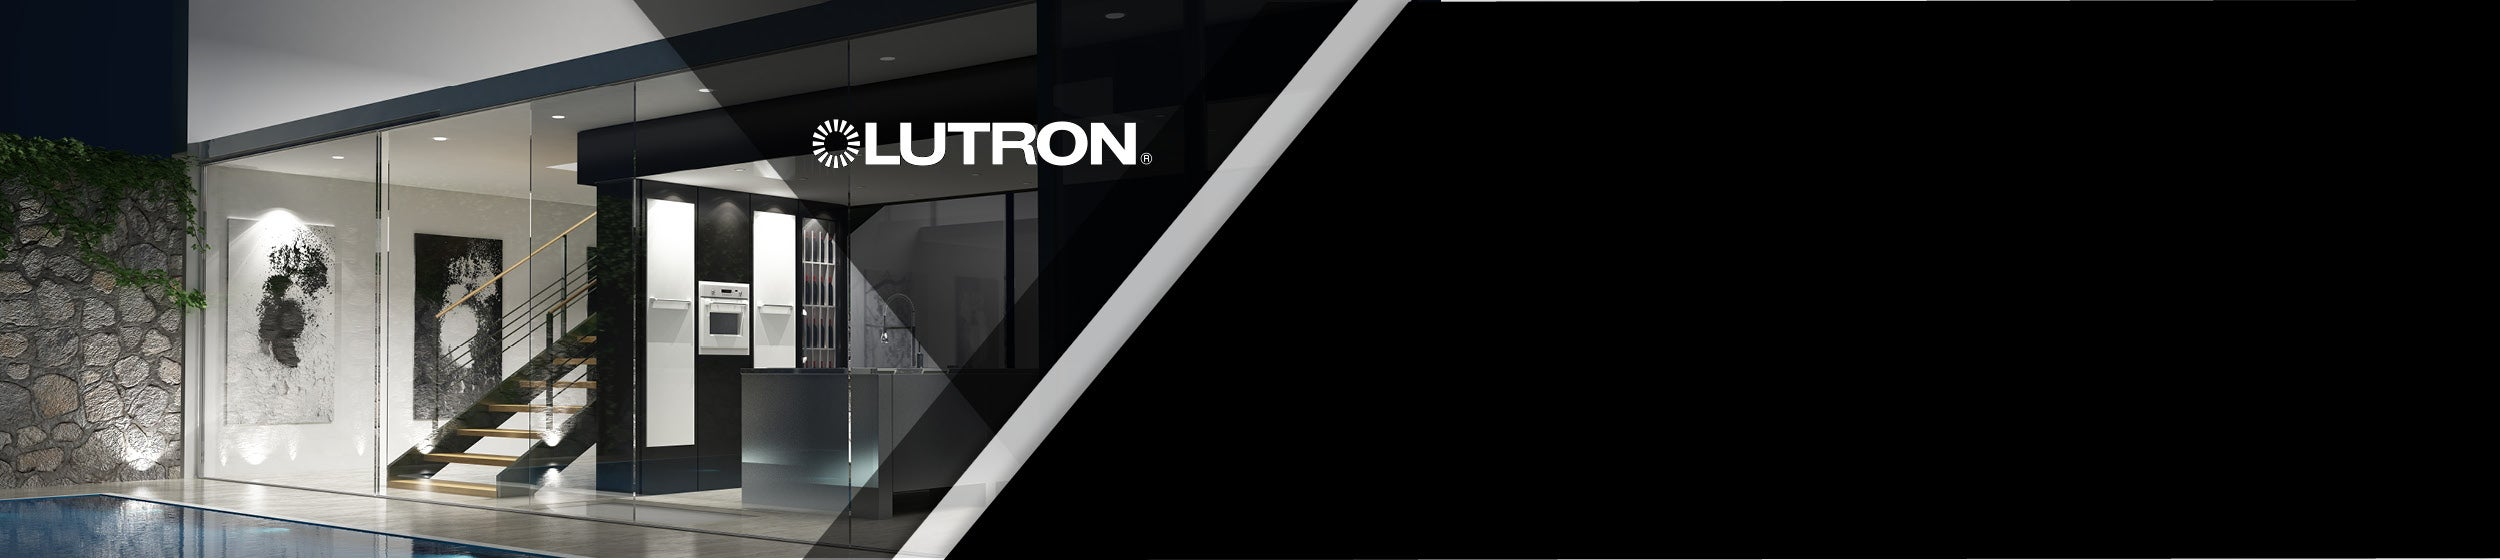 Take control with lighting by Lutron.